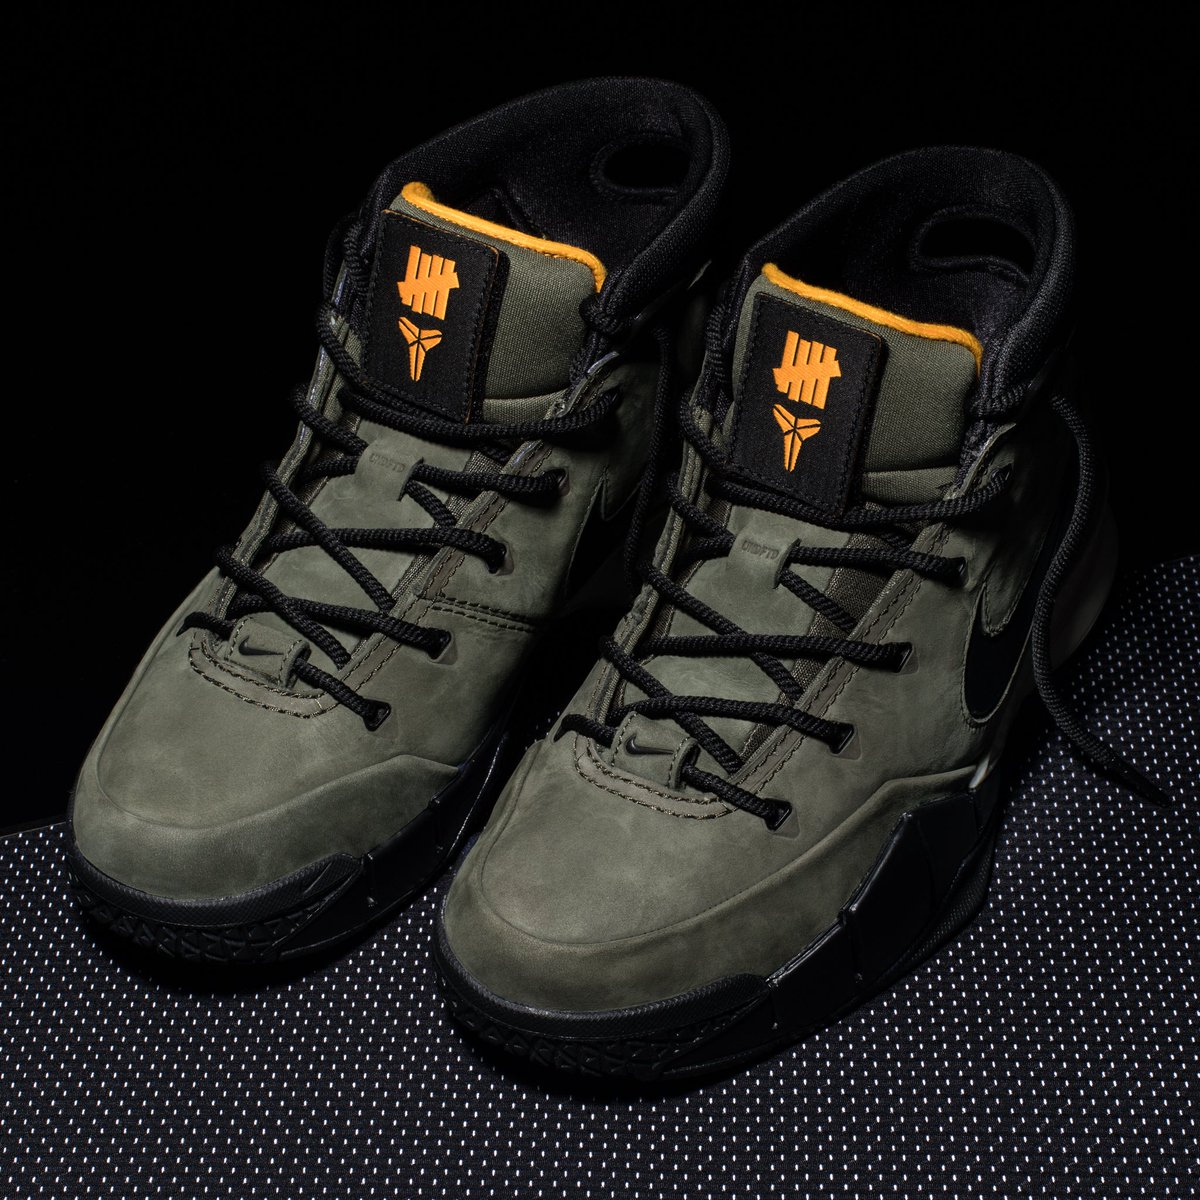 71cb713a243 in celebration of undefeated harajuku meiji doris grand opening on 07 14  undftd will be giving